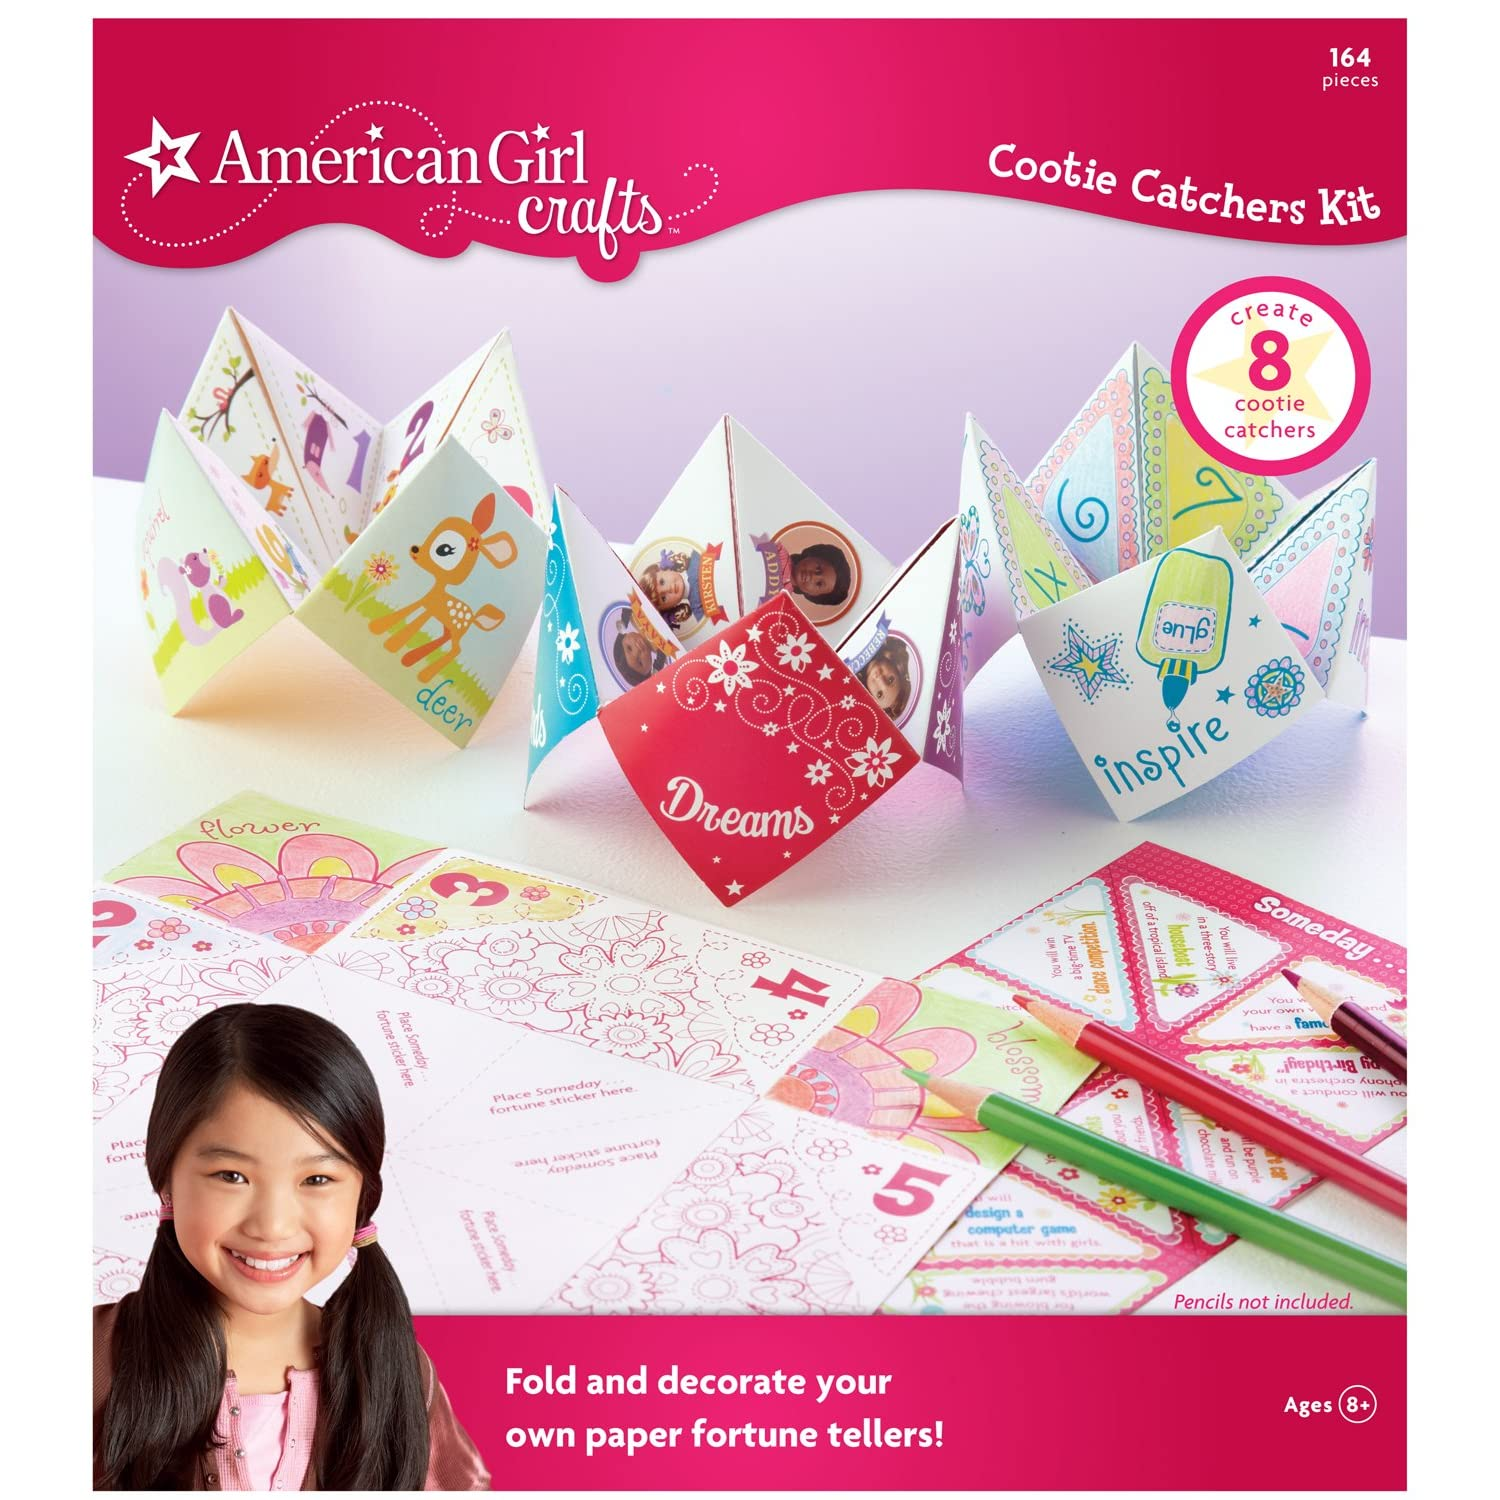 american girl doll play american girl craft kits